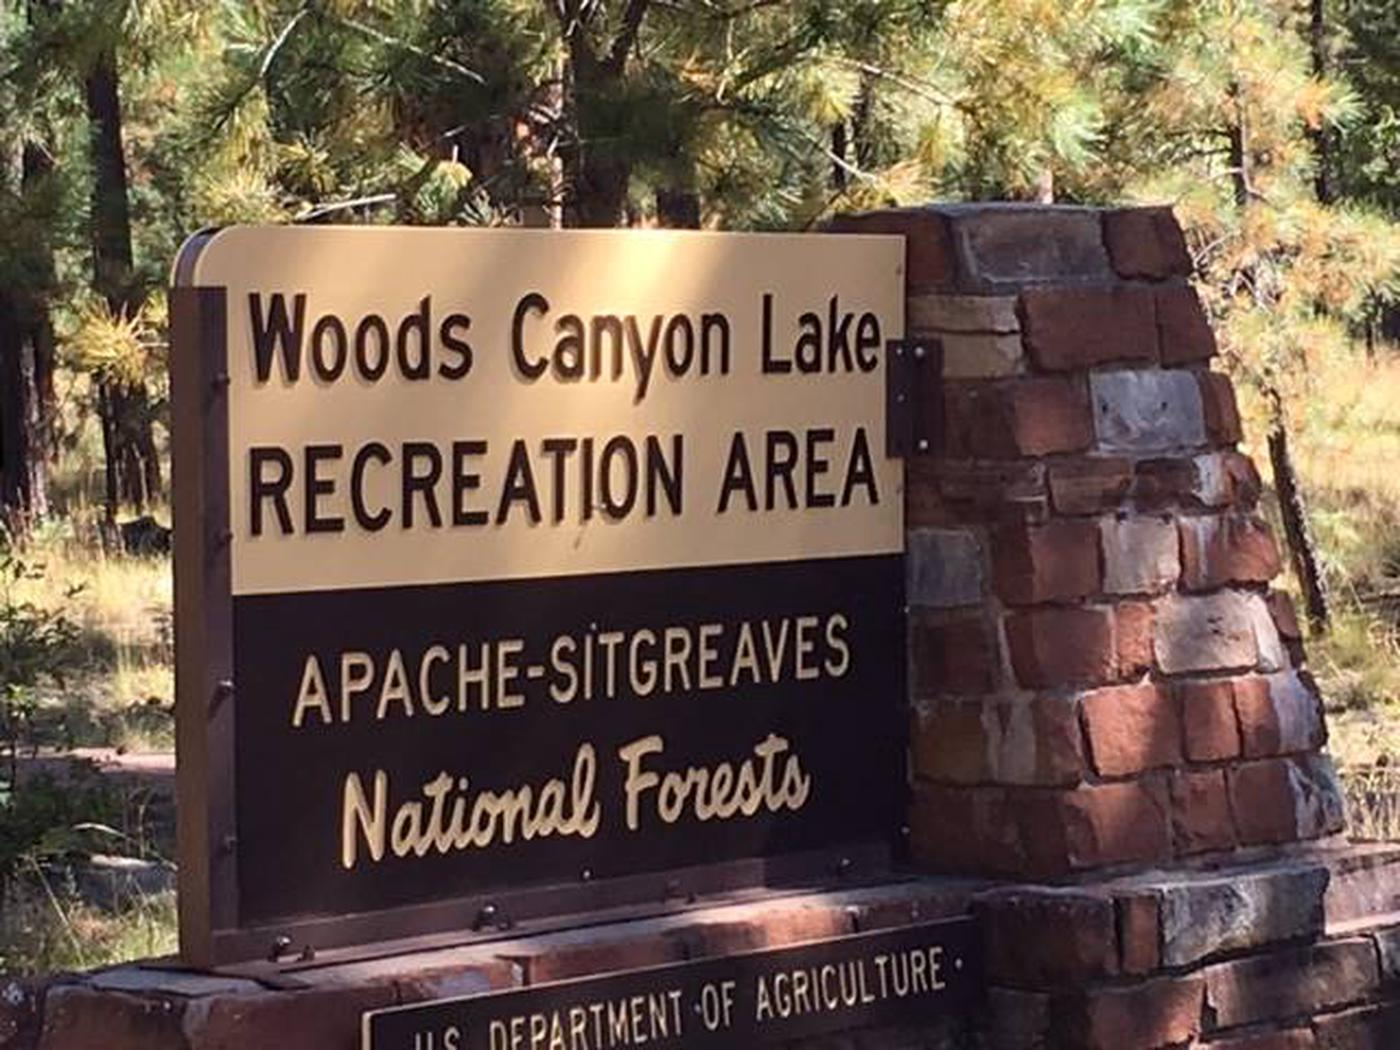 Woods Canyon Lake Recreation Area Portal SignCrook Group Campground is located less than a mile from Woods Canyon Lake. The paved Meadow Trail guides visitors from the campground to the lake.